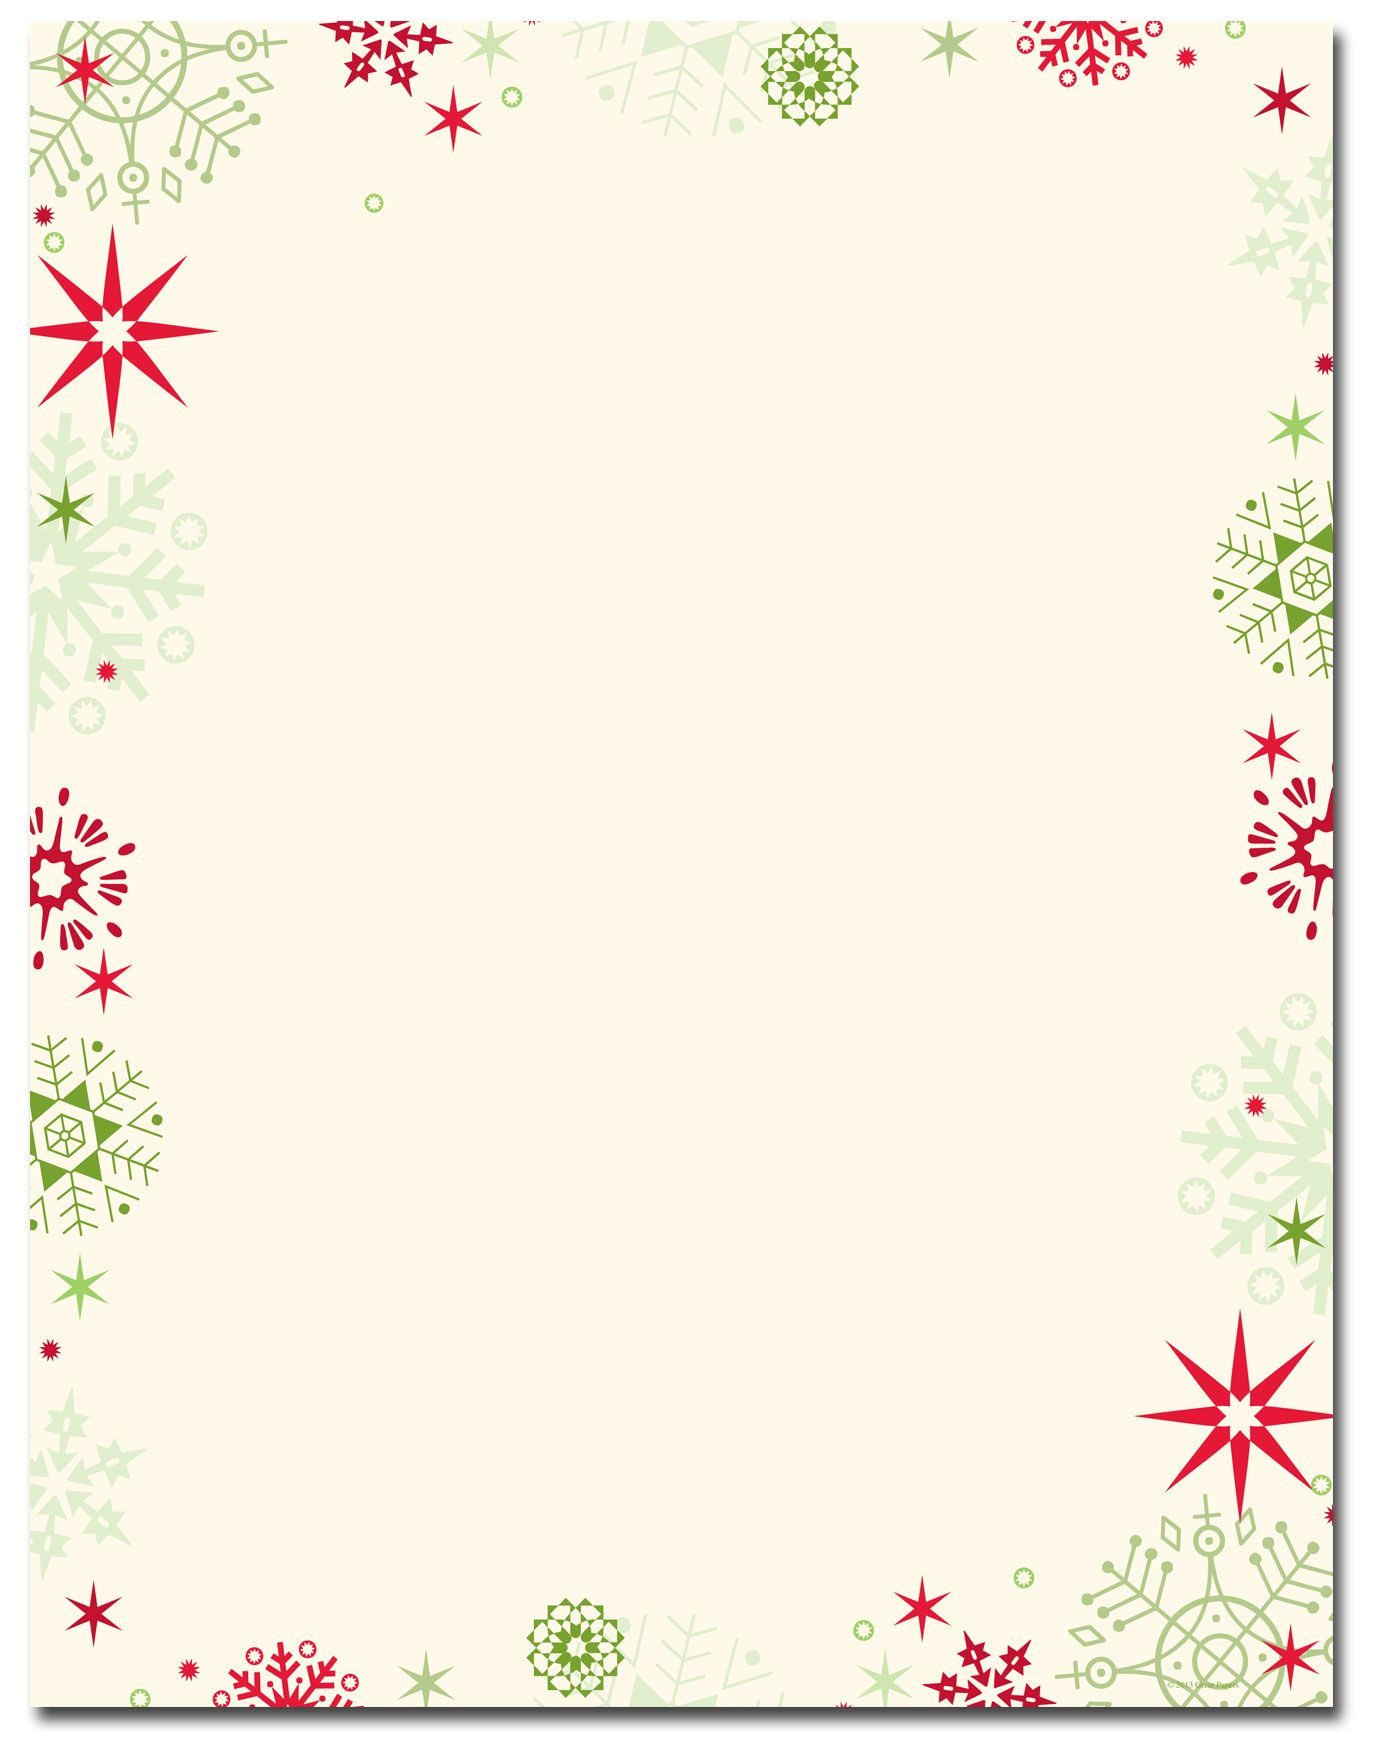 graphic about Free Christmas Stationary Printable named No cost Printable A4 Xmas Letterheads